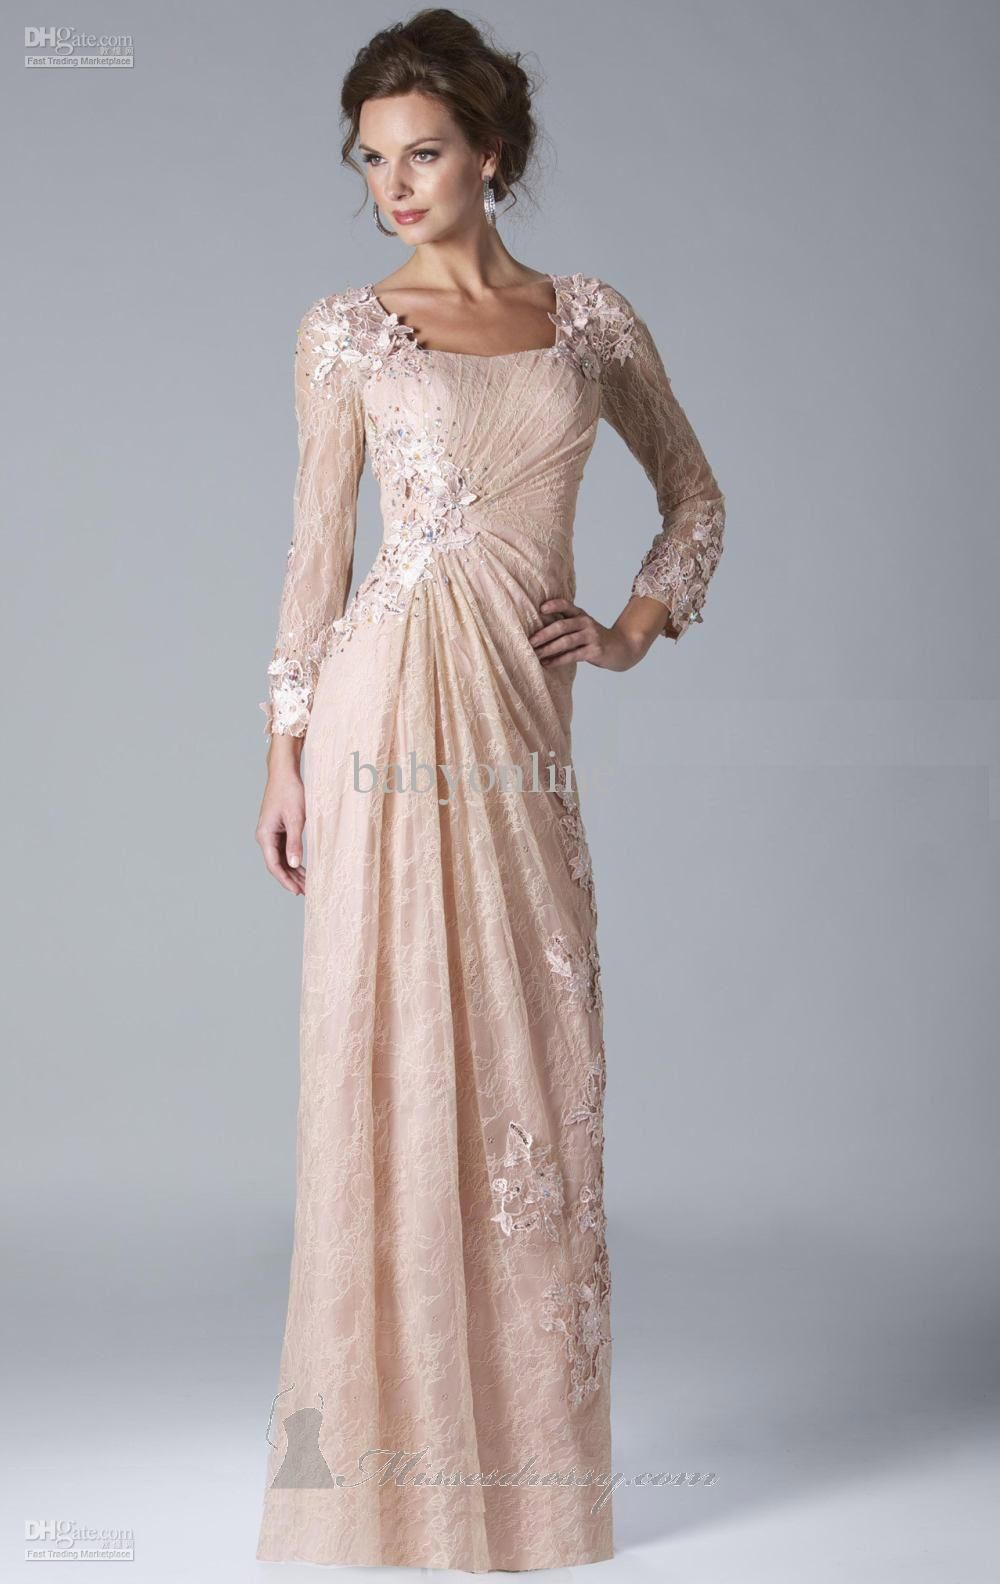 - 2013 DHgate Sexy Lace Evening Dresses Long Mother of the Bride Dresses   Buy Wholesale On Line Direct from China